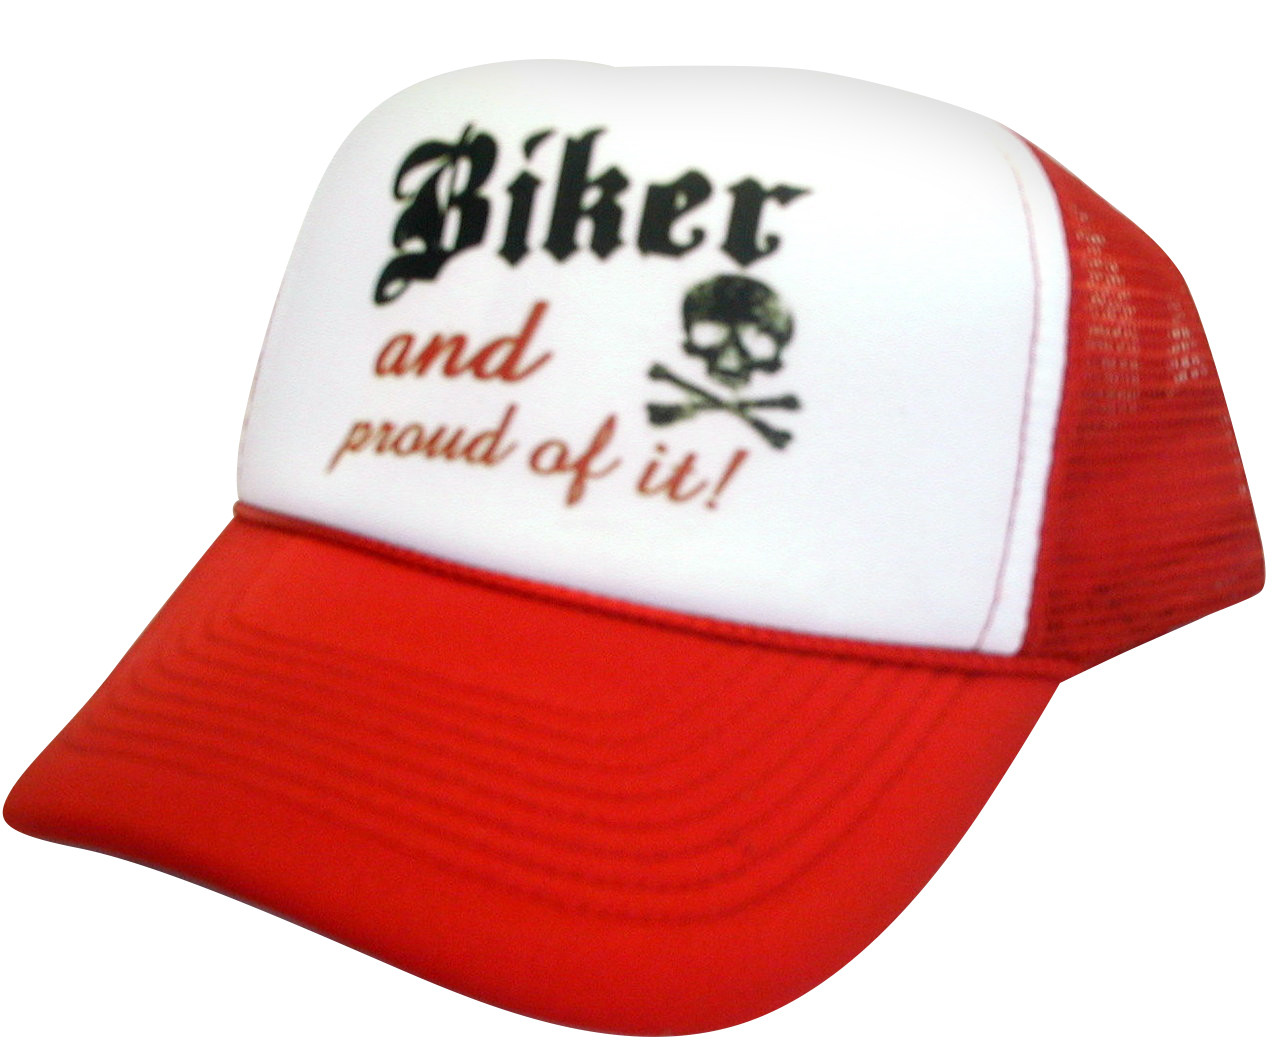 Biker and Proud of It Trucker Hat e818fd04f6e